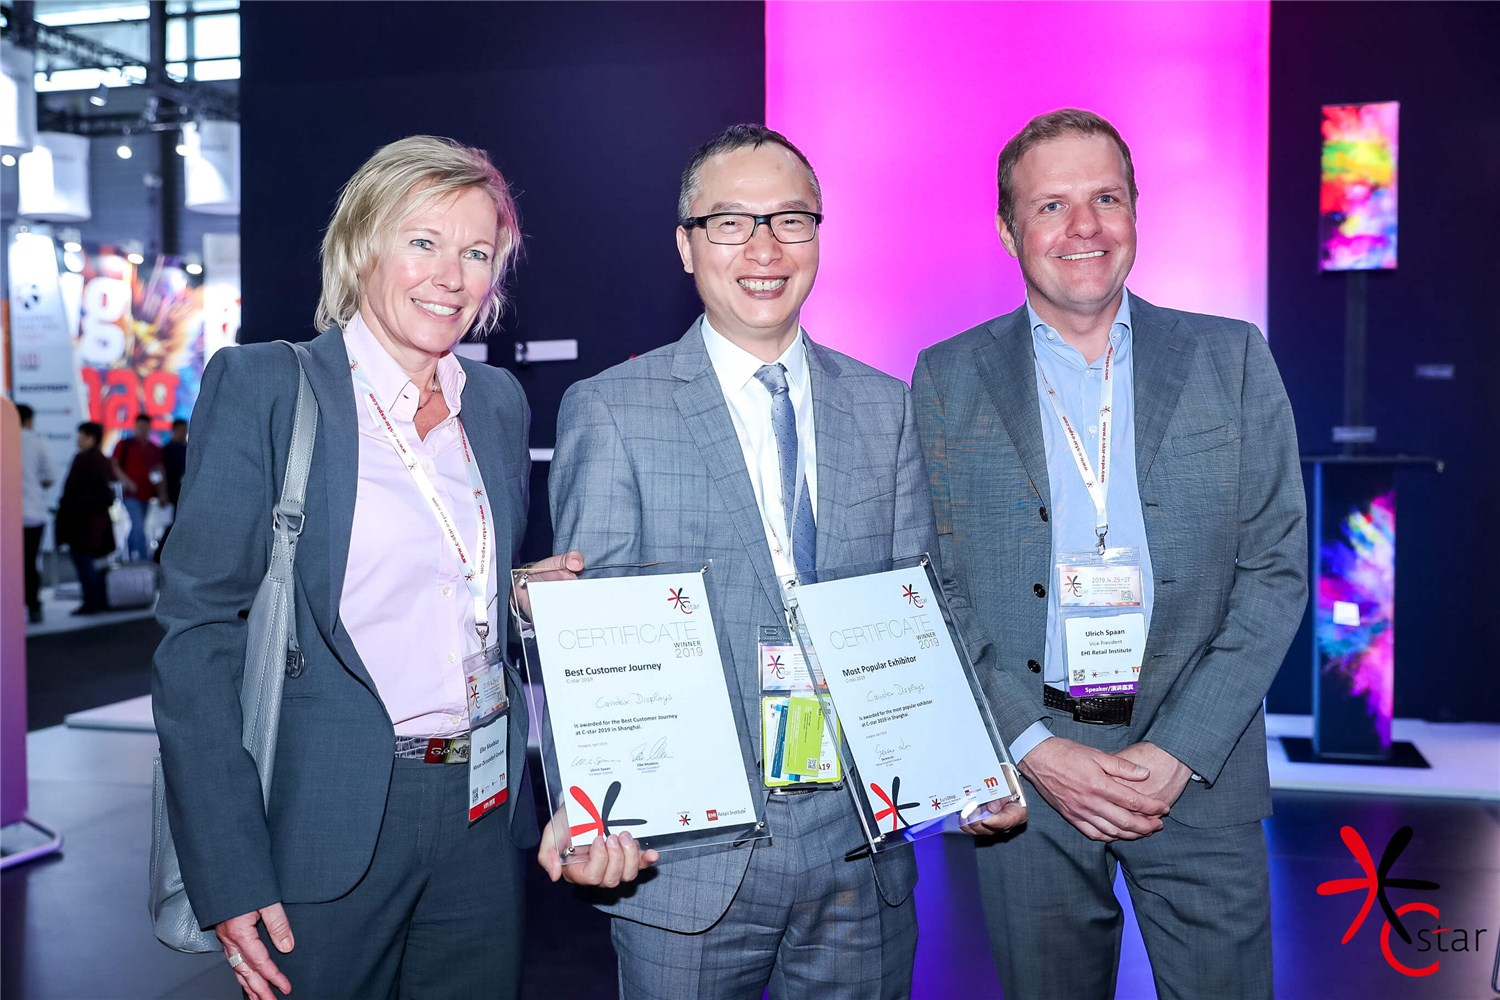 Outstanding Design: Best Stand Awards and Best Customer Journey at C-star 2019